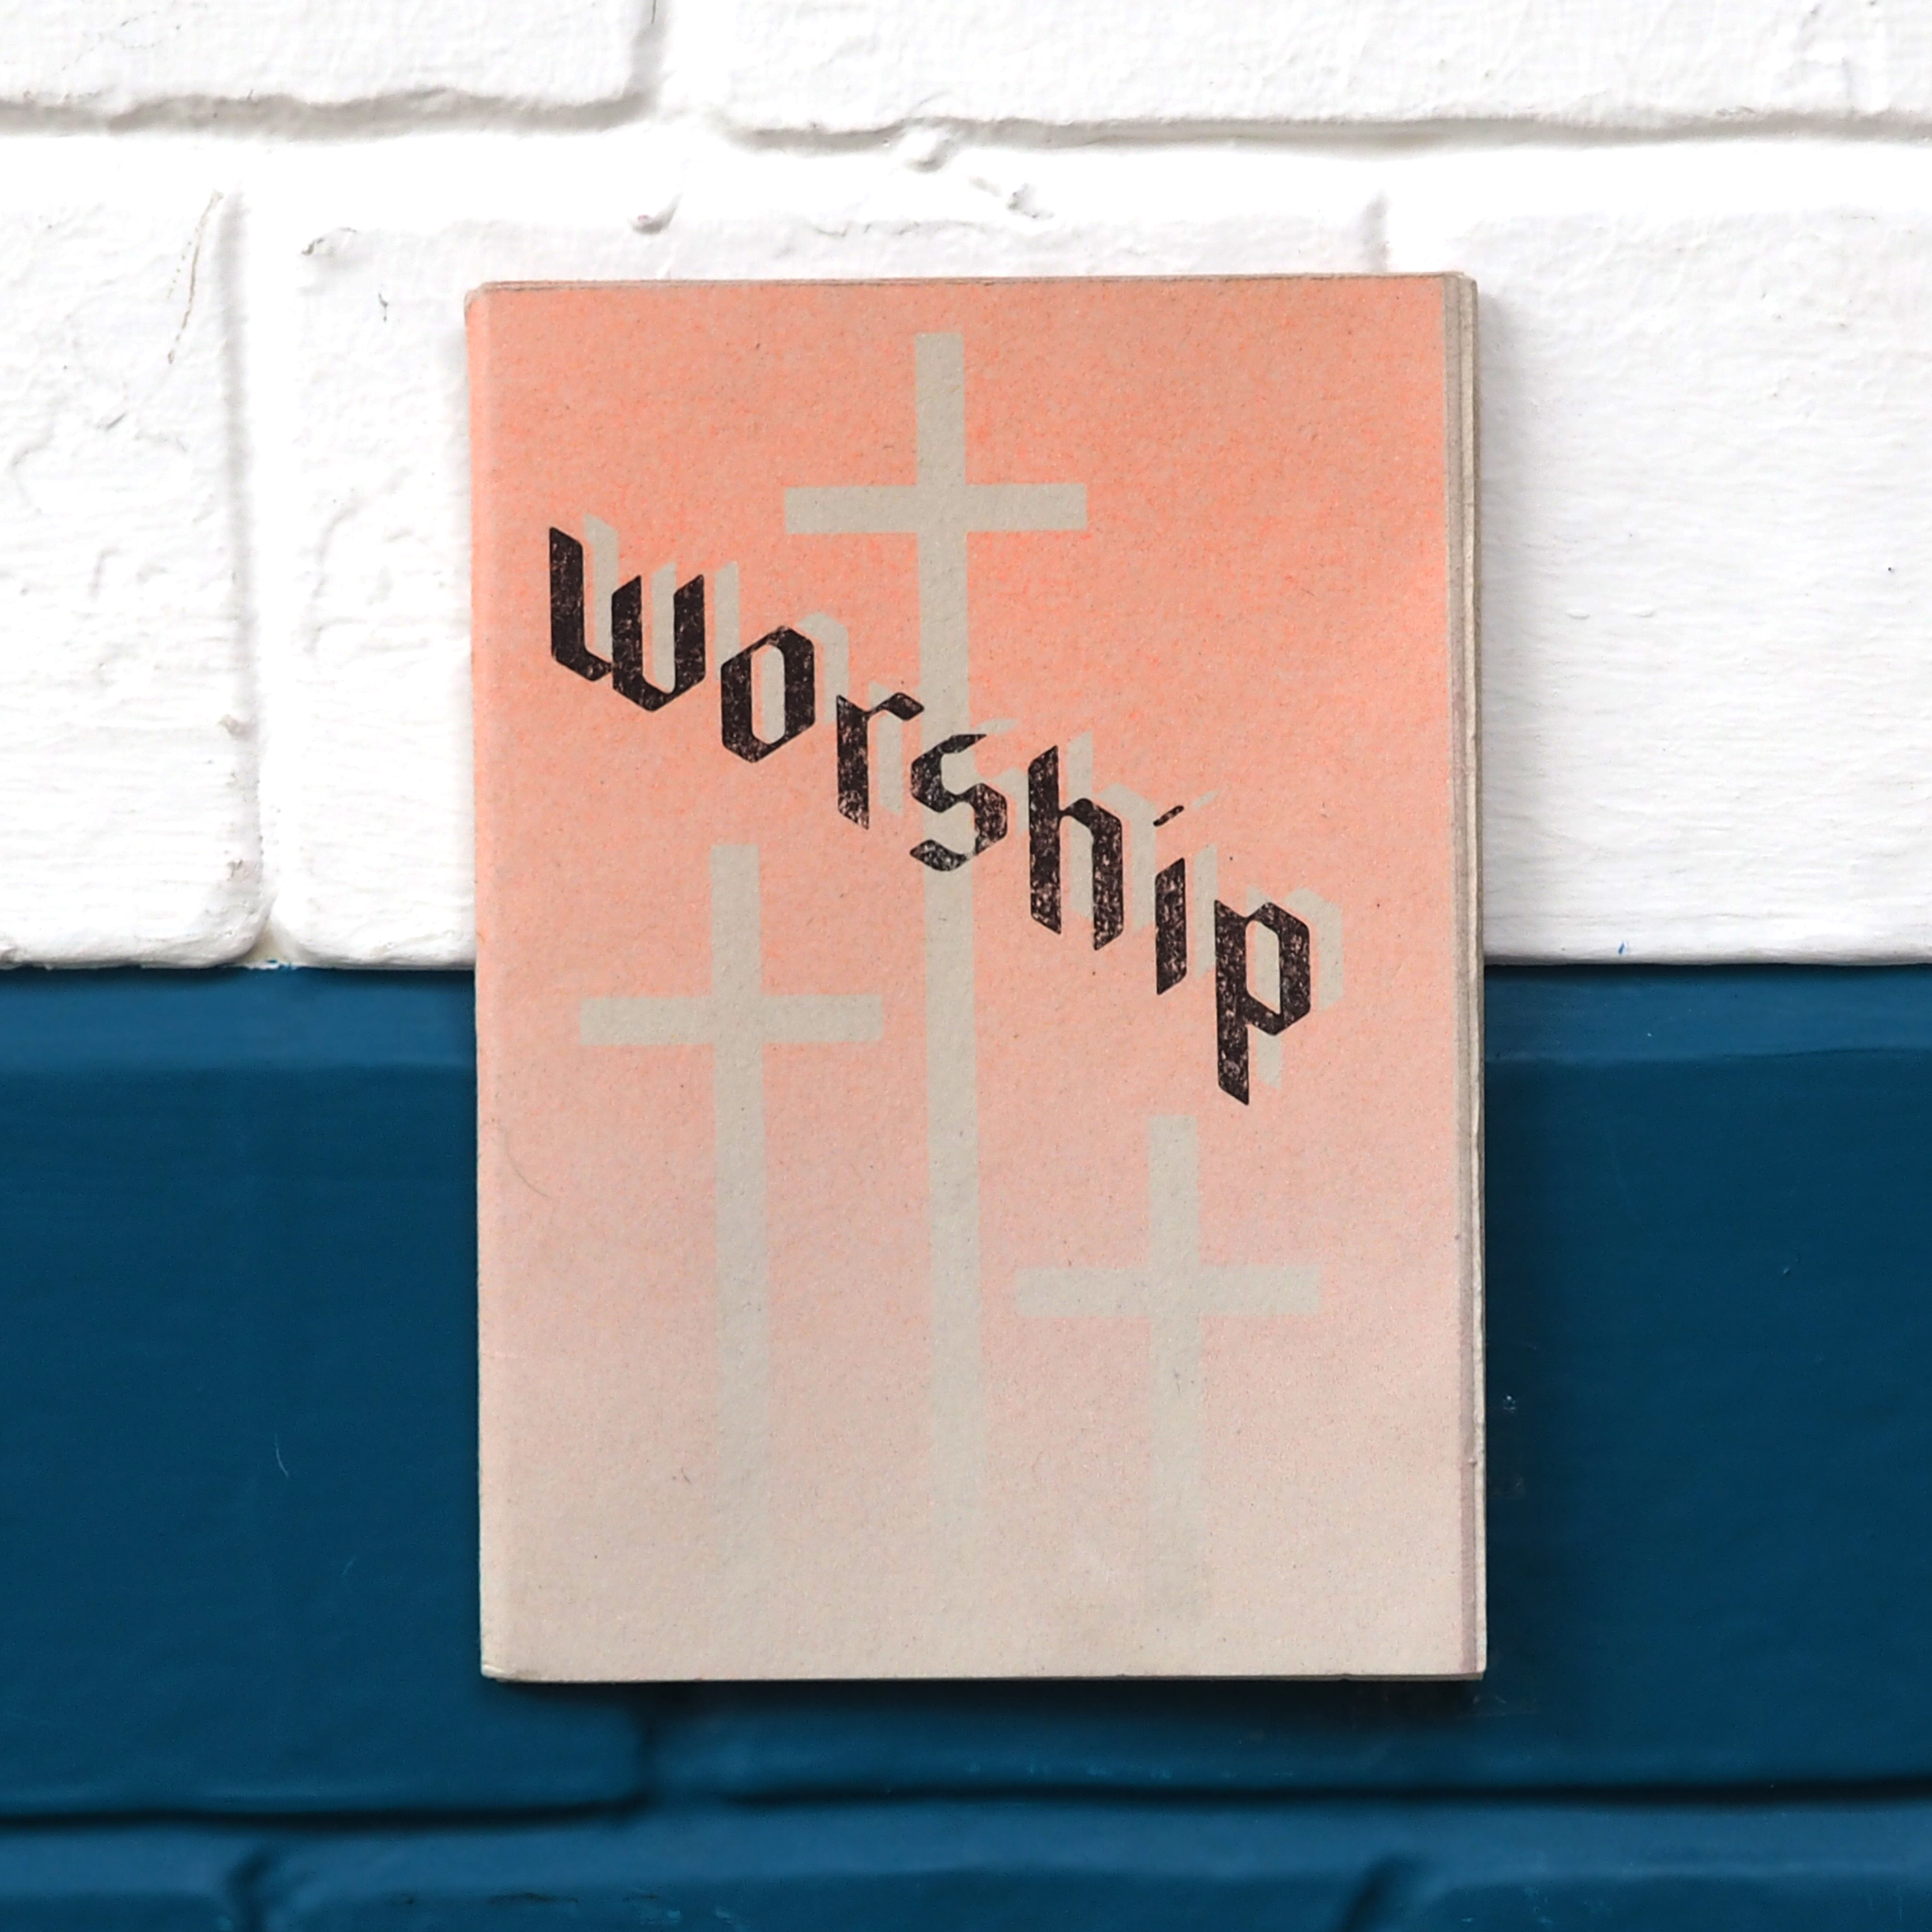 Worship - Amy Dunne